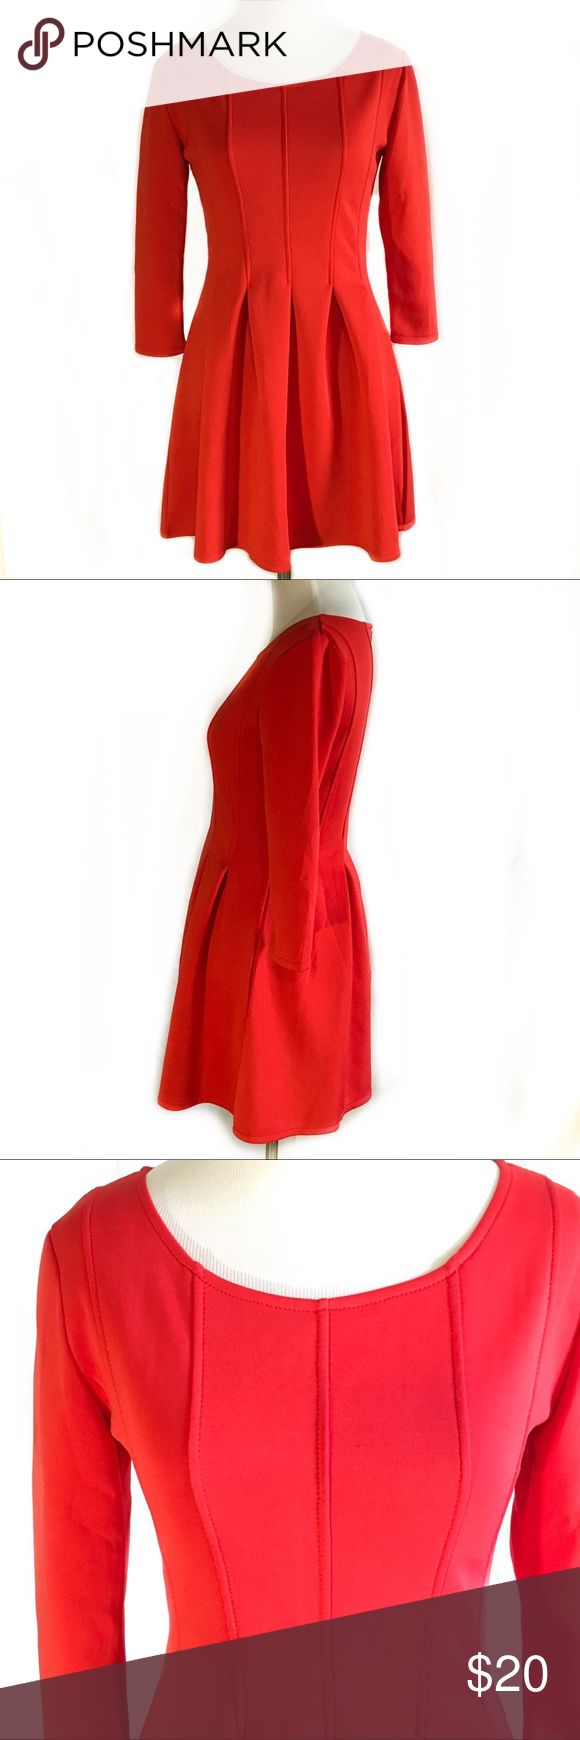 """Women's EUC Choies skater fit and flair red dress ❤️Description: Fit and flair, pleated scoop neck ❤️Excellent used condition: no major flaws, no stains, holes, tears ❤️Brand: Choies ❤️Materials:  ?? No tags  ❤️Approx. Measurements, laying flat: Waist  13.5"""" Bust 15"""" across chest Sleeve length 12.5"""" pit to sleeve hem  Total length   31"""" shoulder to bottom hem  ❤️All measurements approximate, may vary depending on stretch of the fabric and person measuring. All used items may have loose…"""